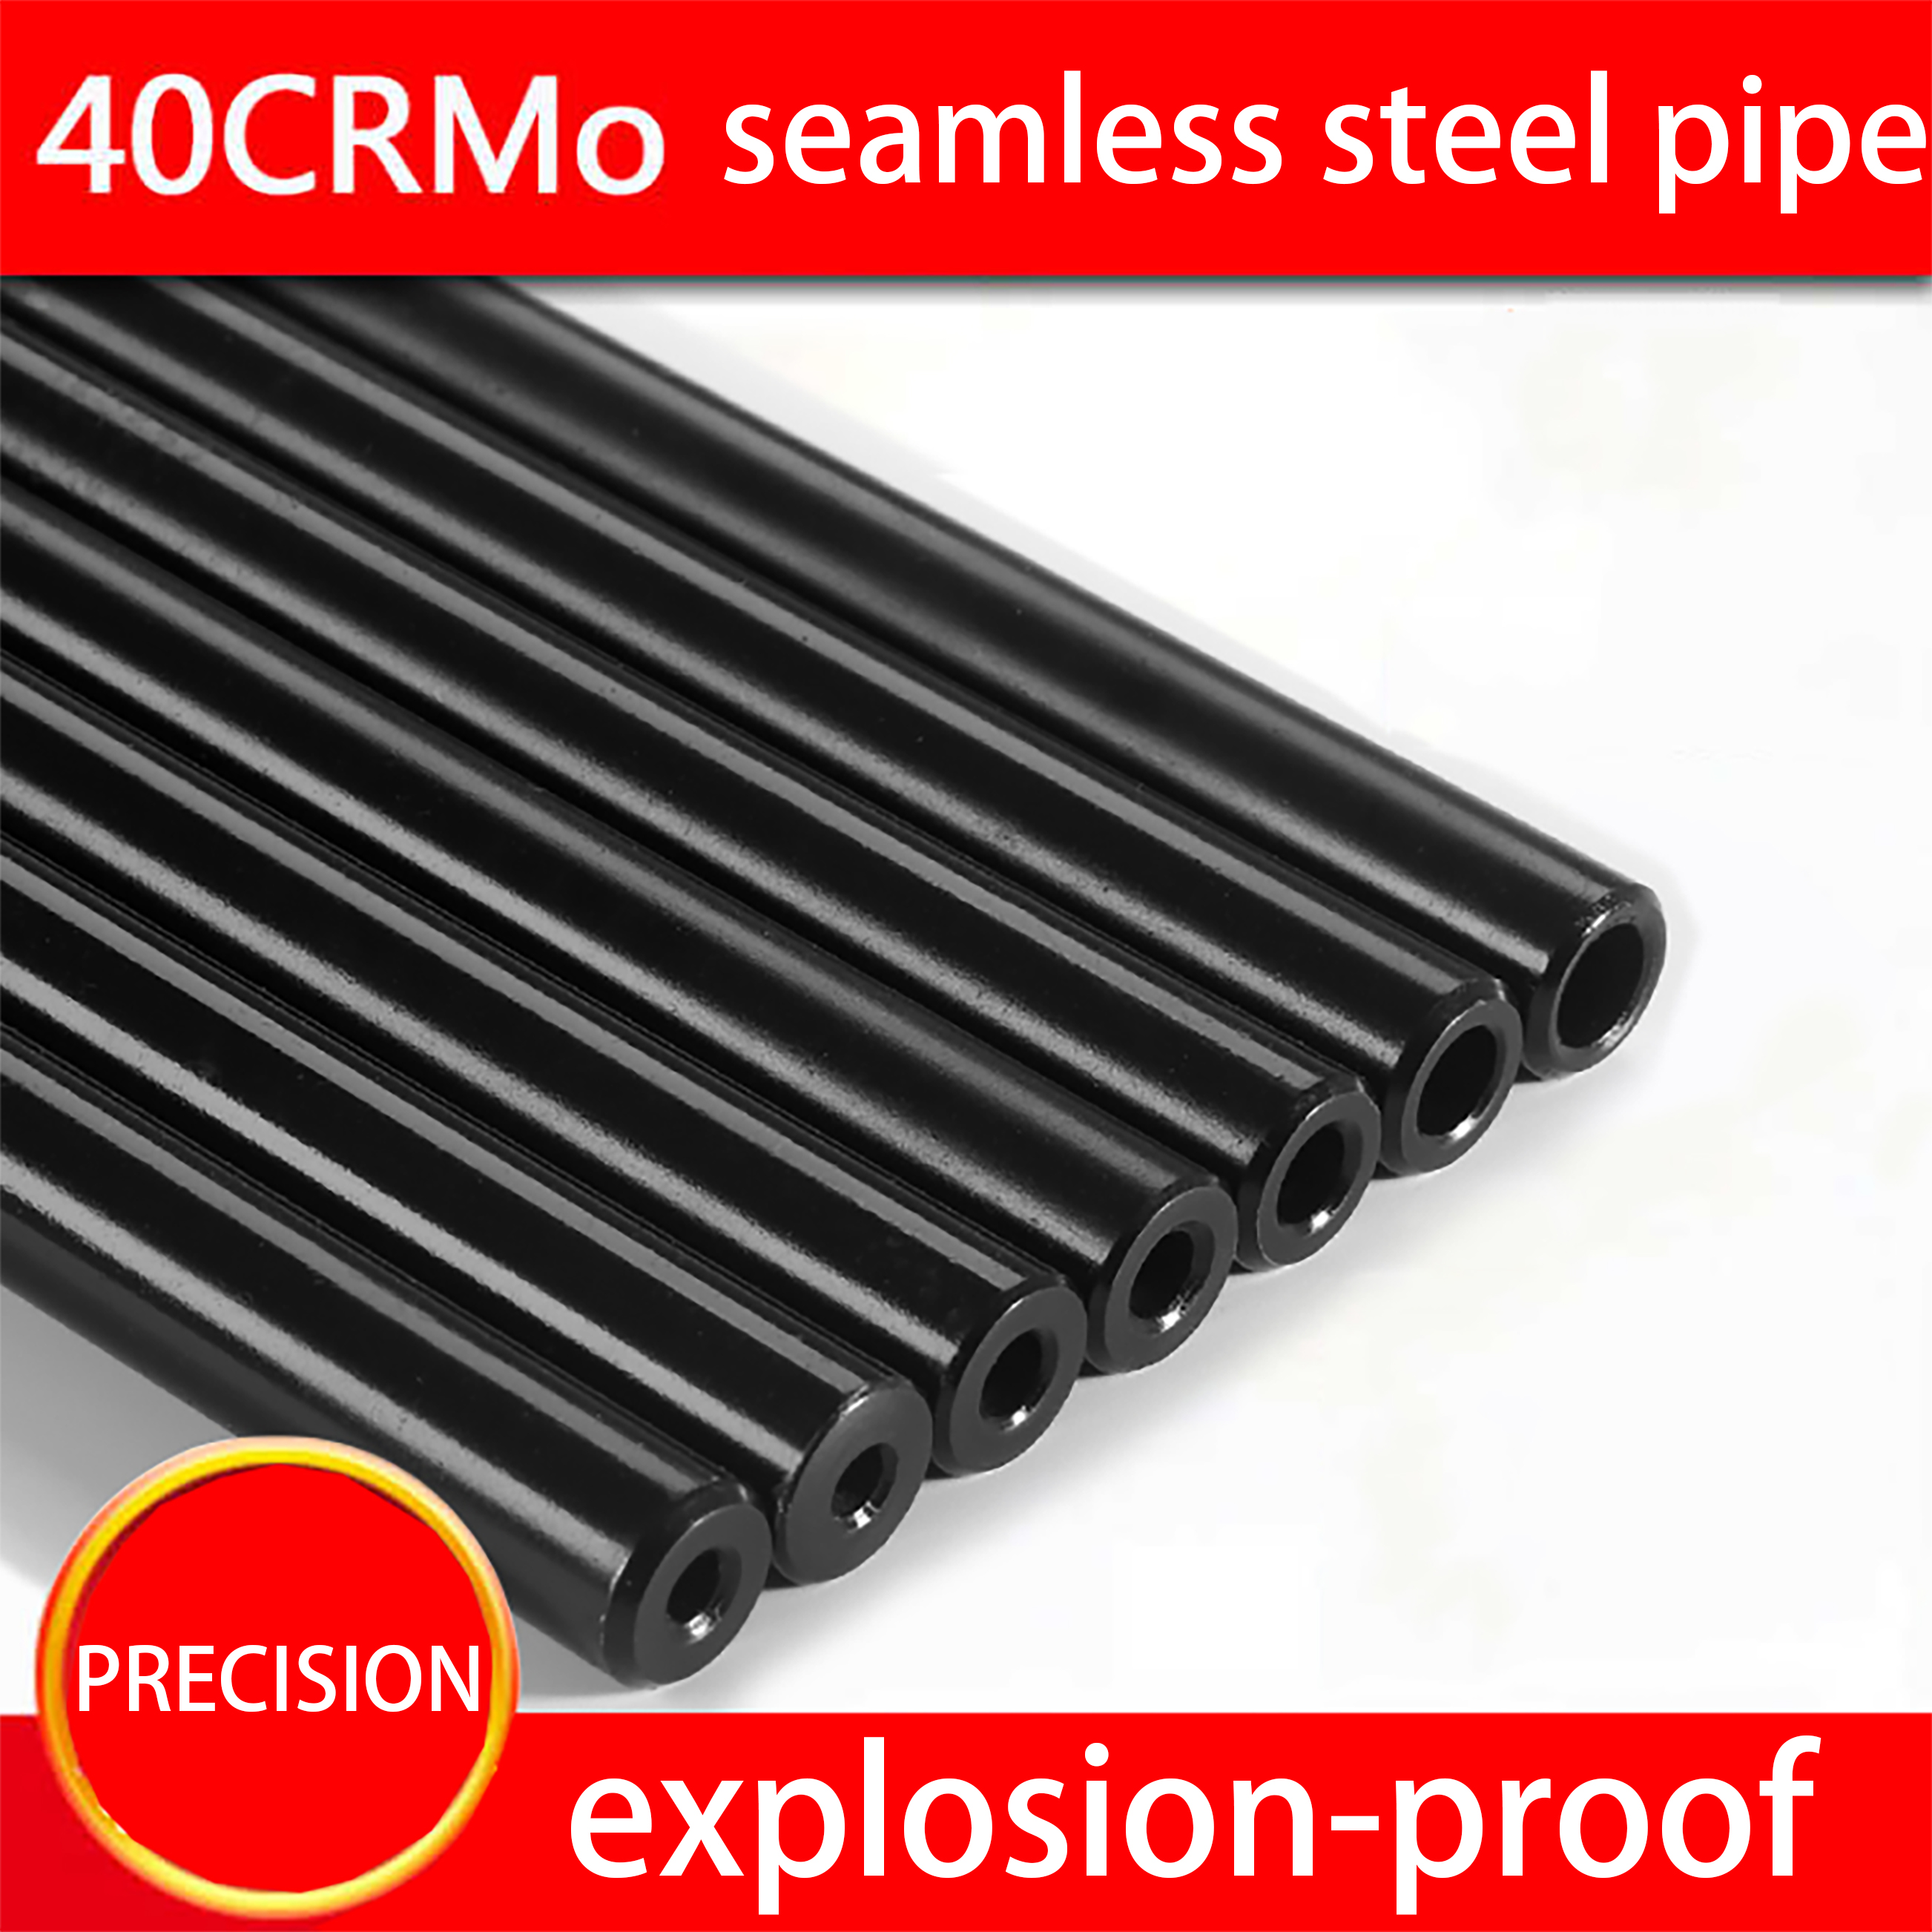 Seamless steel pipe OD 16 mm tube steel Hydraulic chromium-molybdenum alloy precision steel tubes